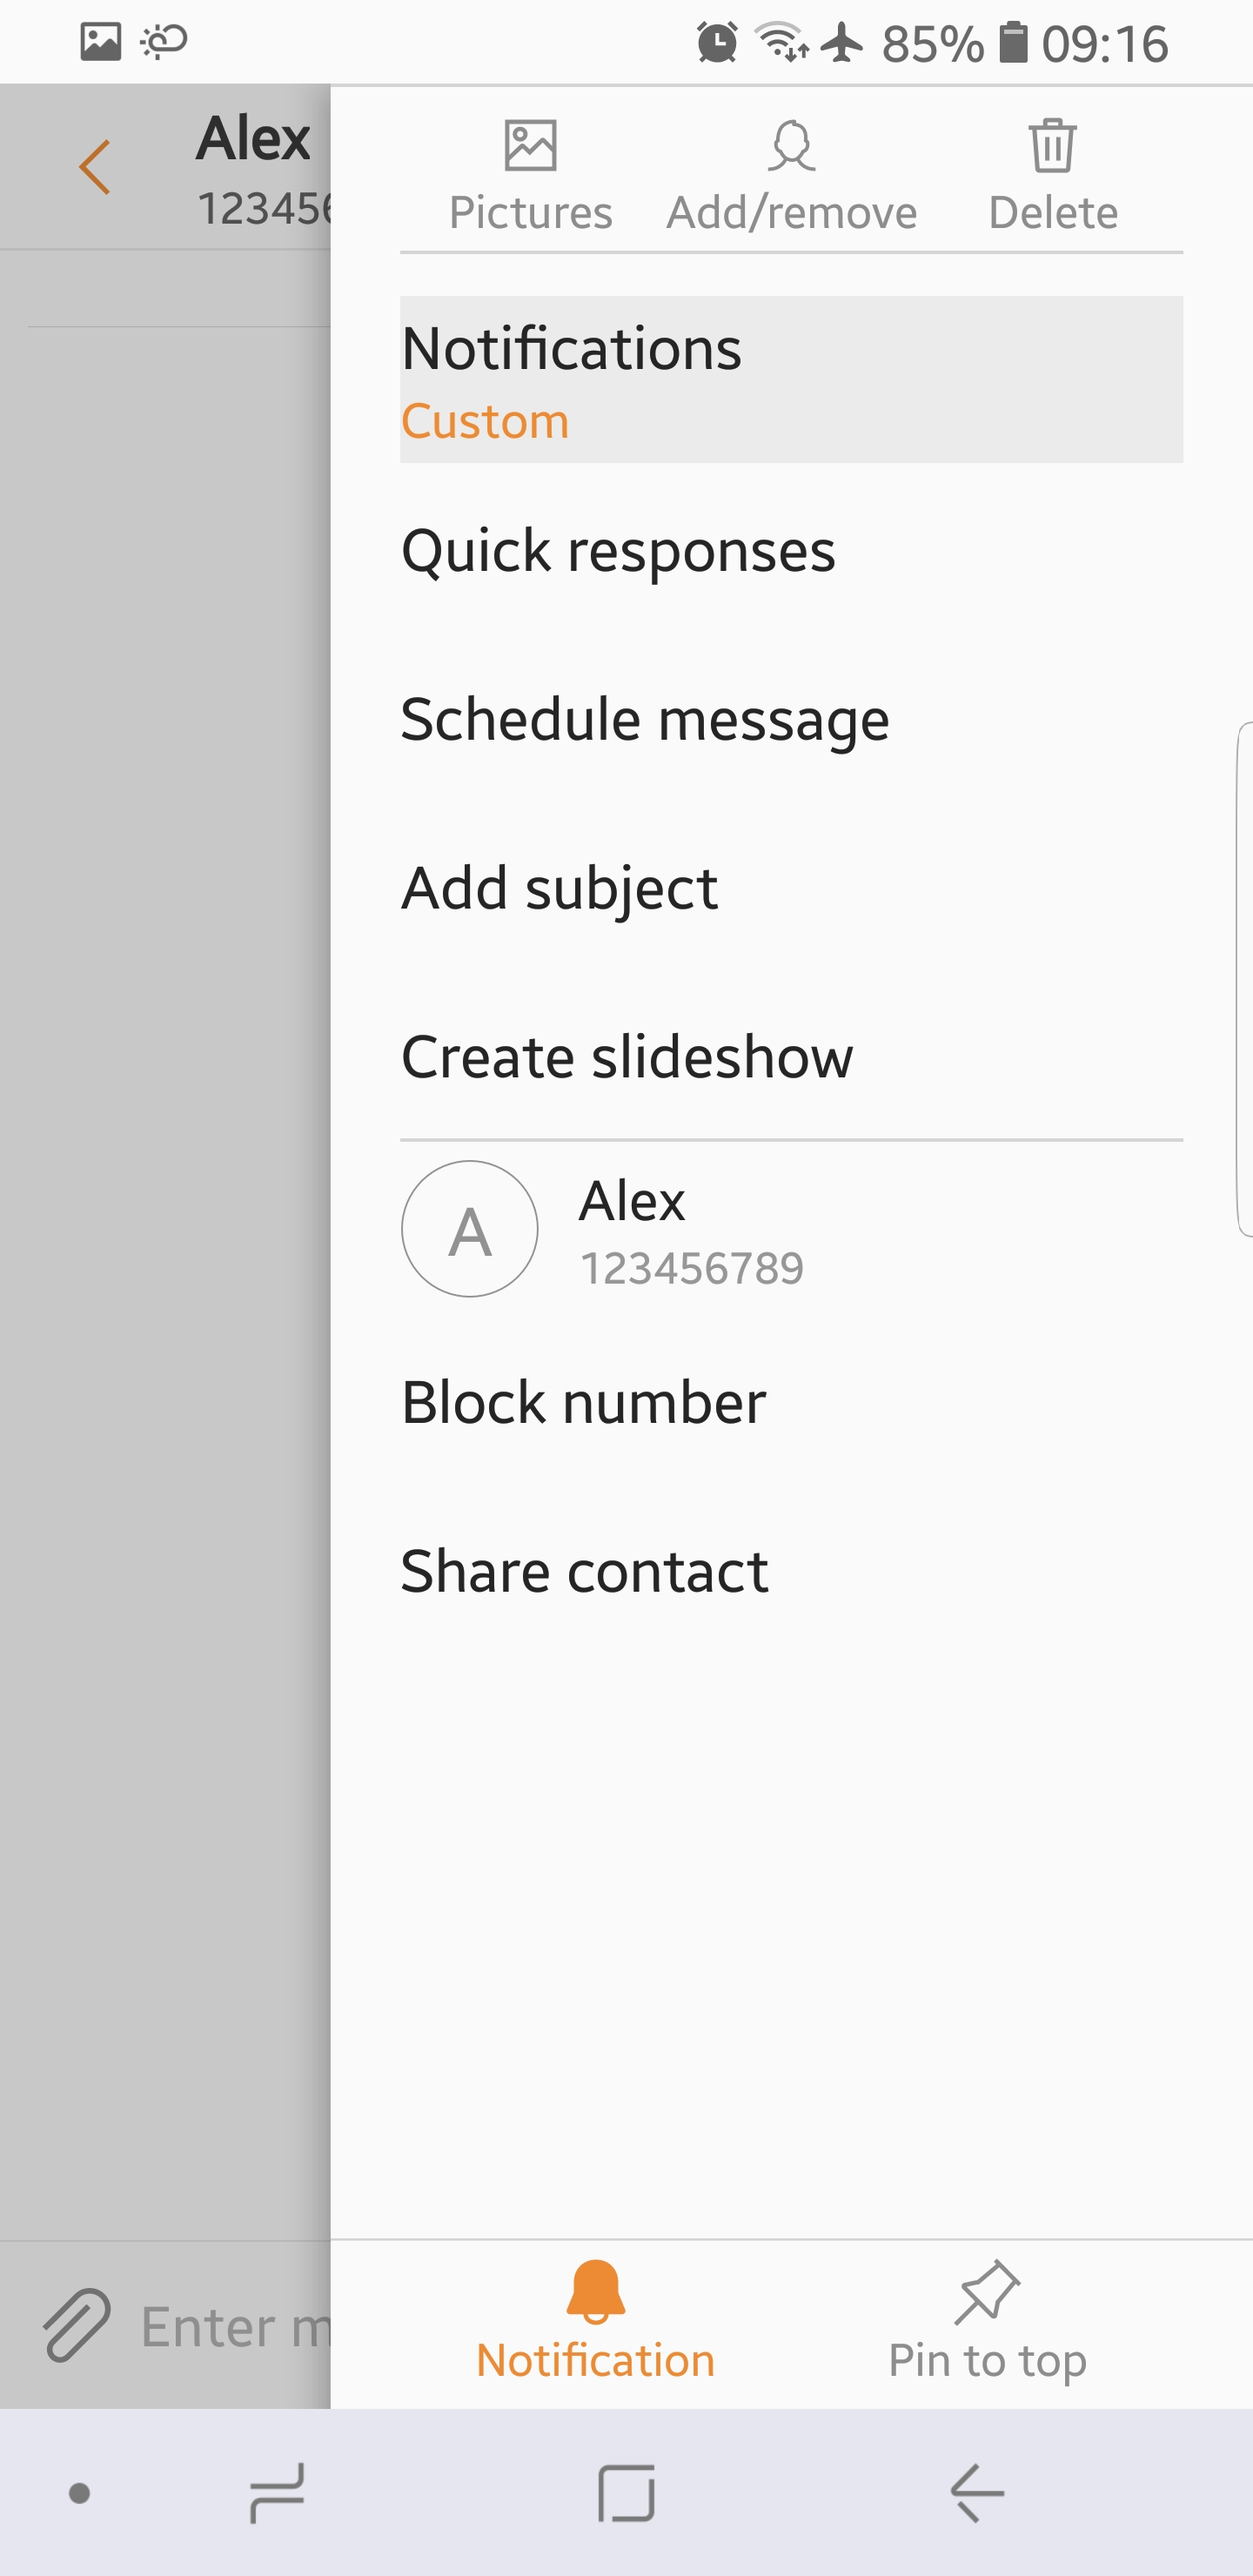 Bring back the individual text tones and notifications on S9